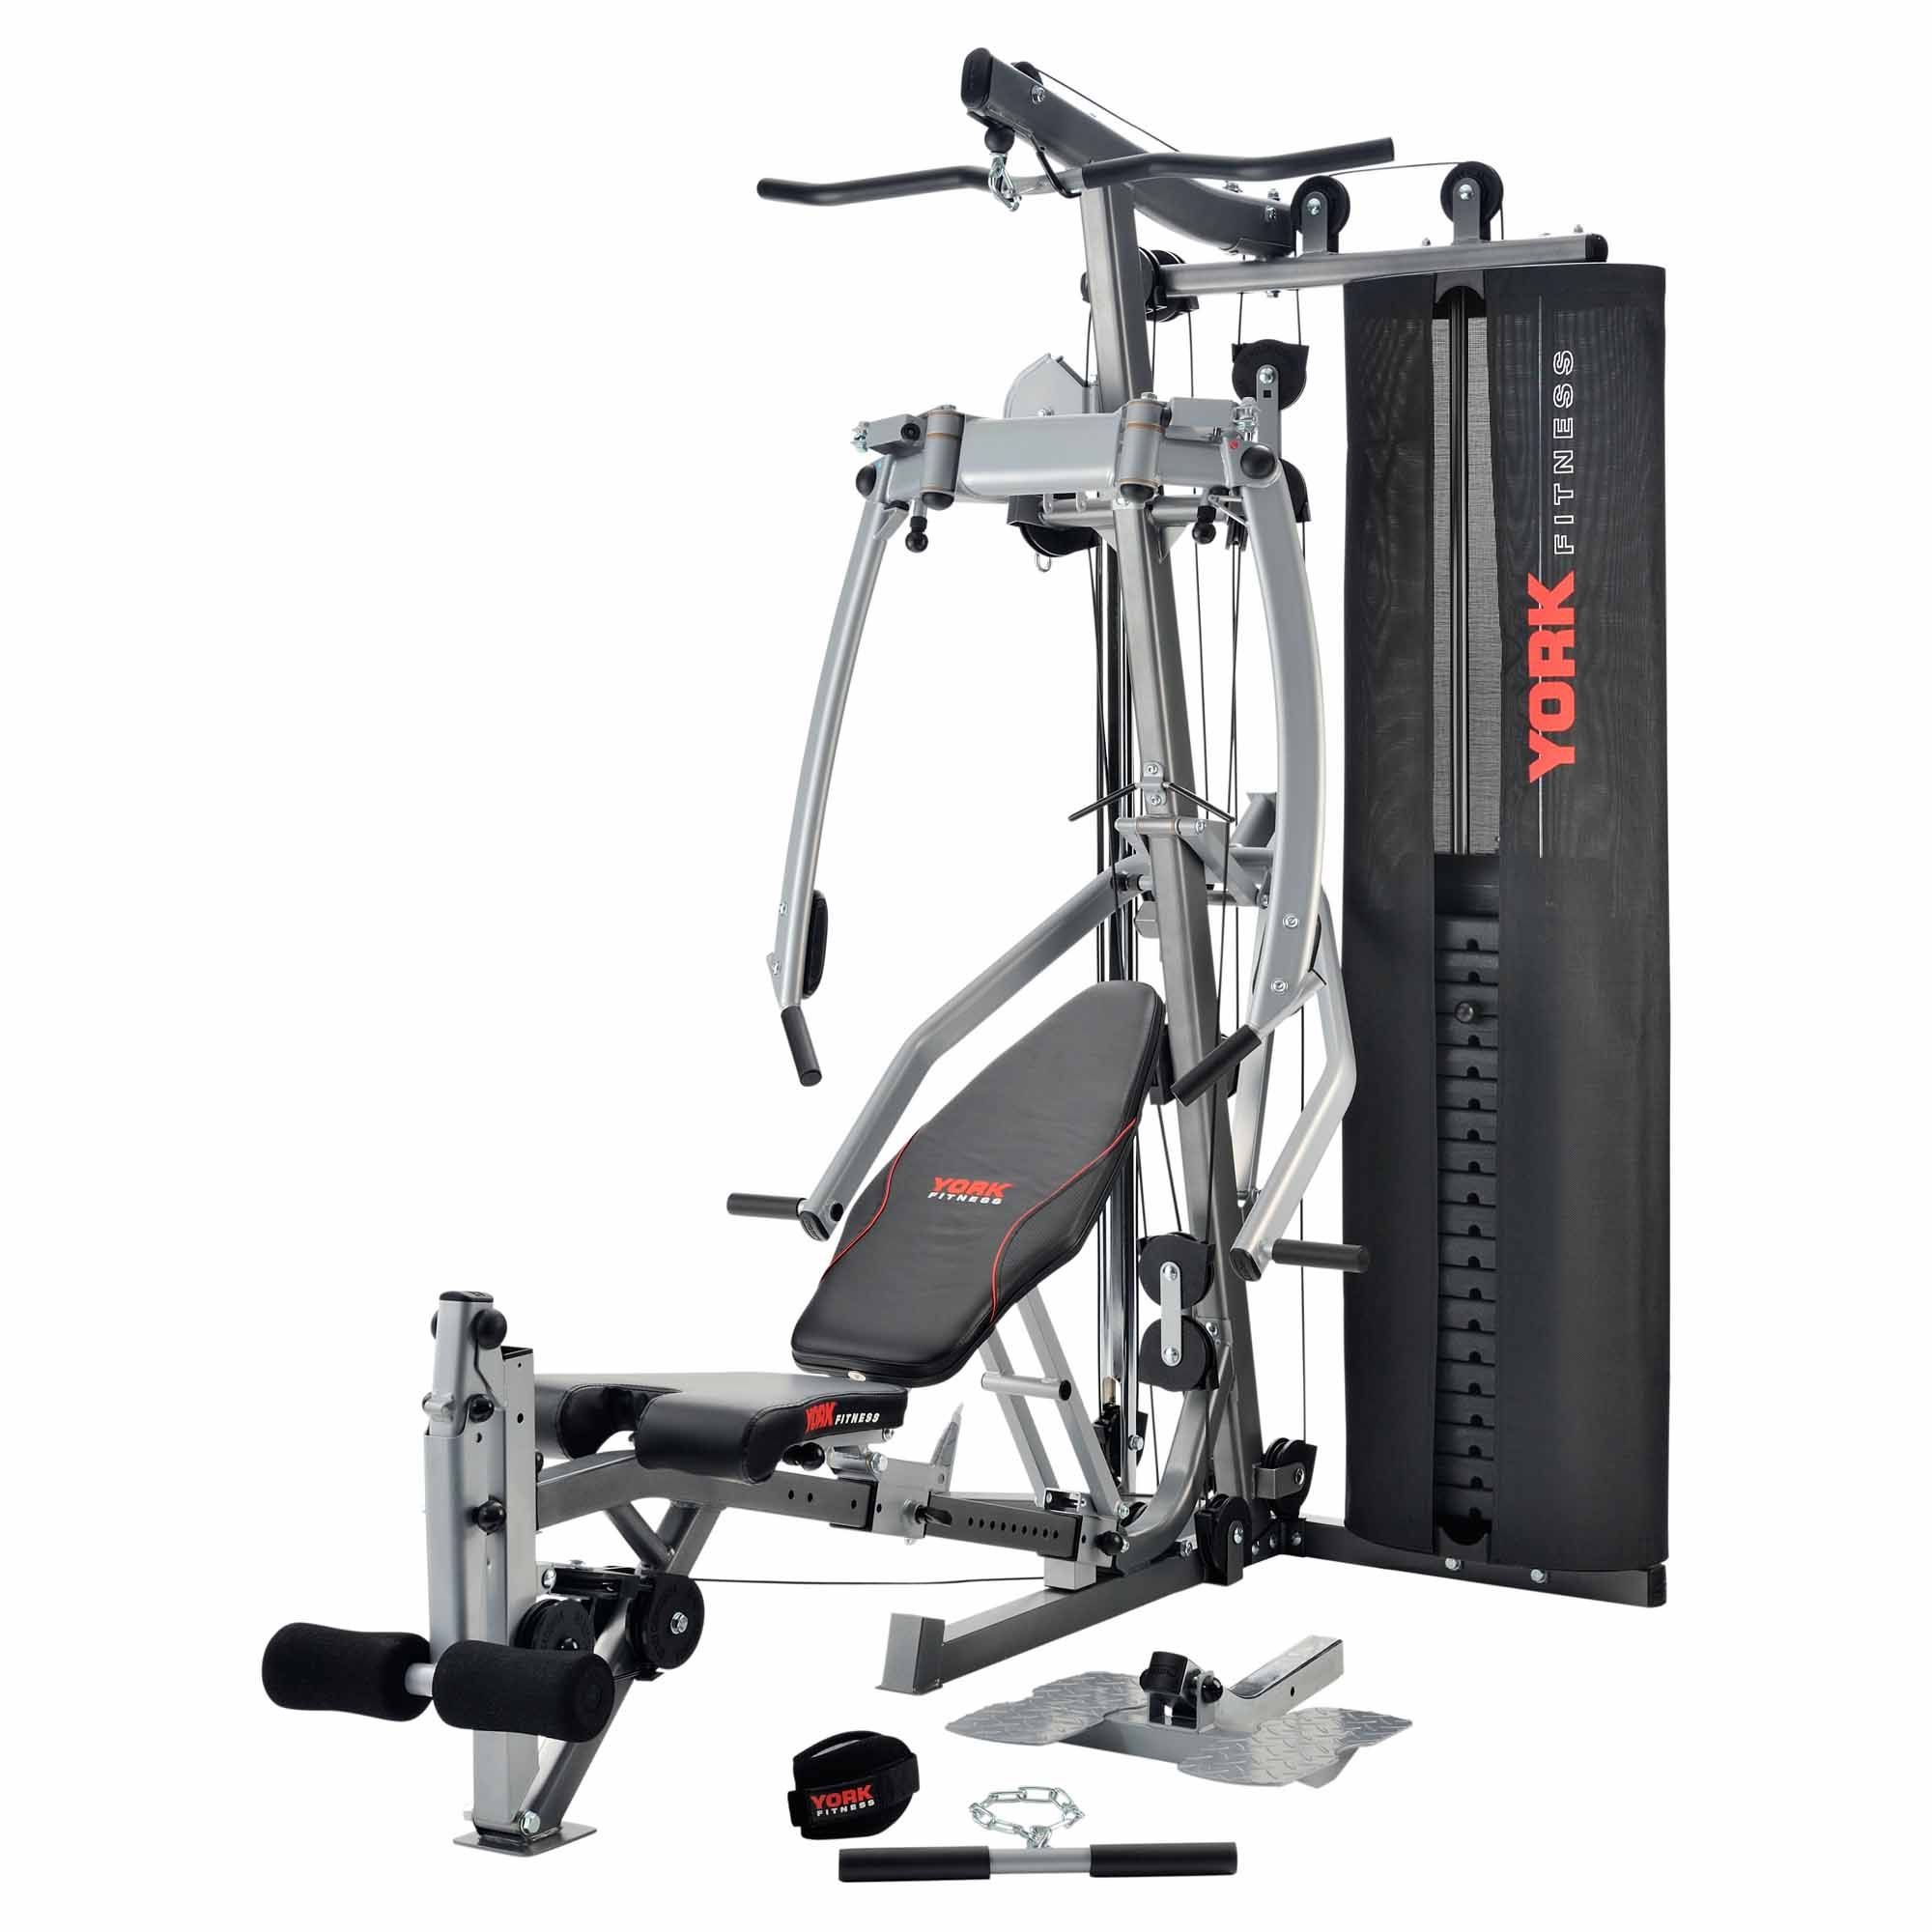 North York Personal Trainer For In Home: York Excel Multigym